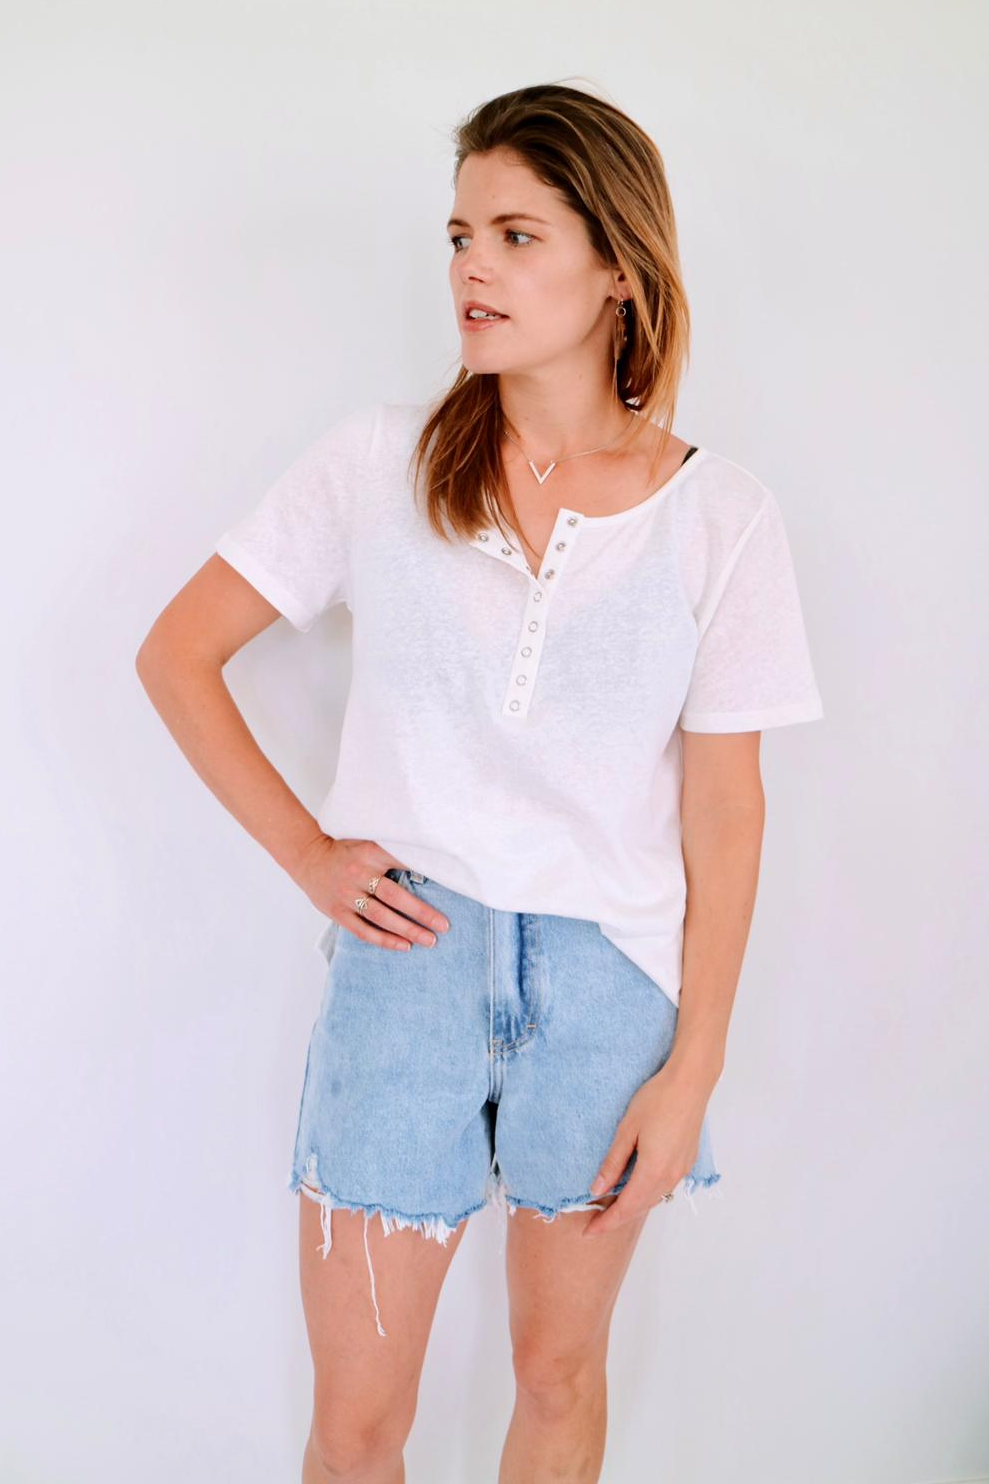 stylish-breastfeeding-linen-tee